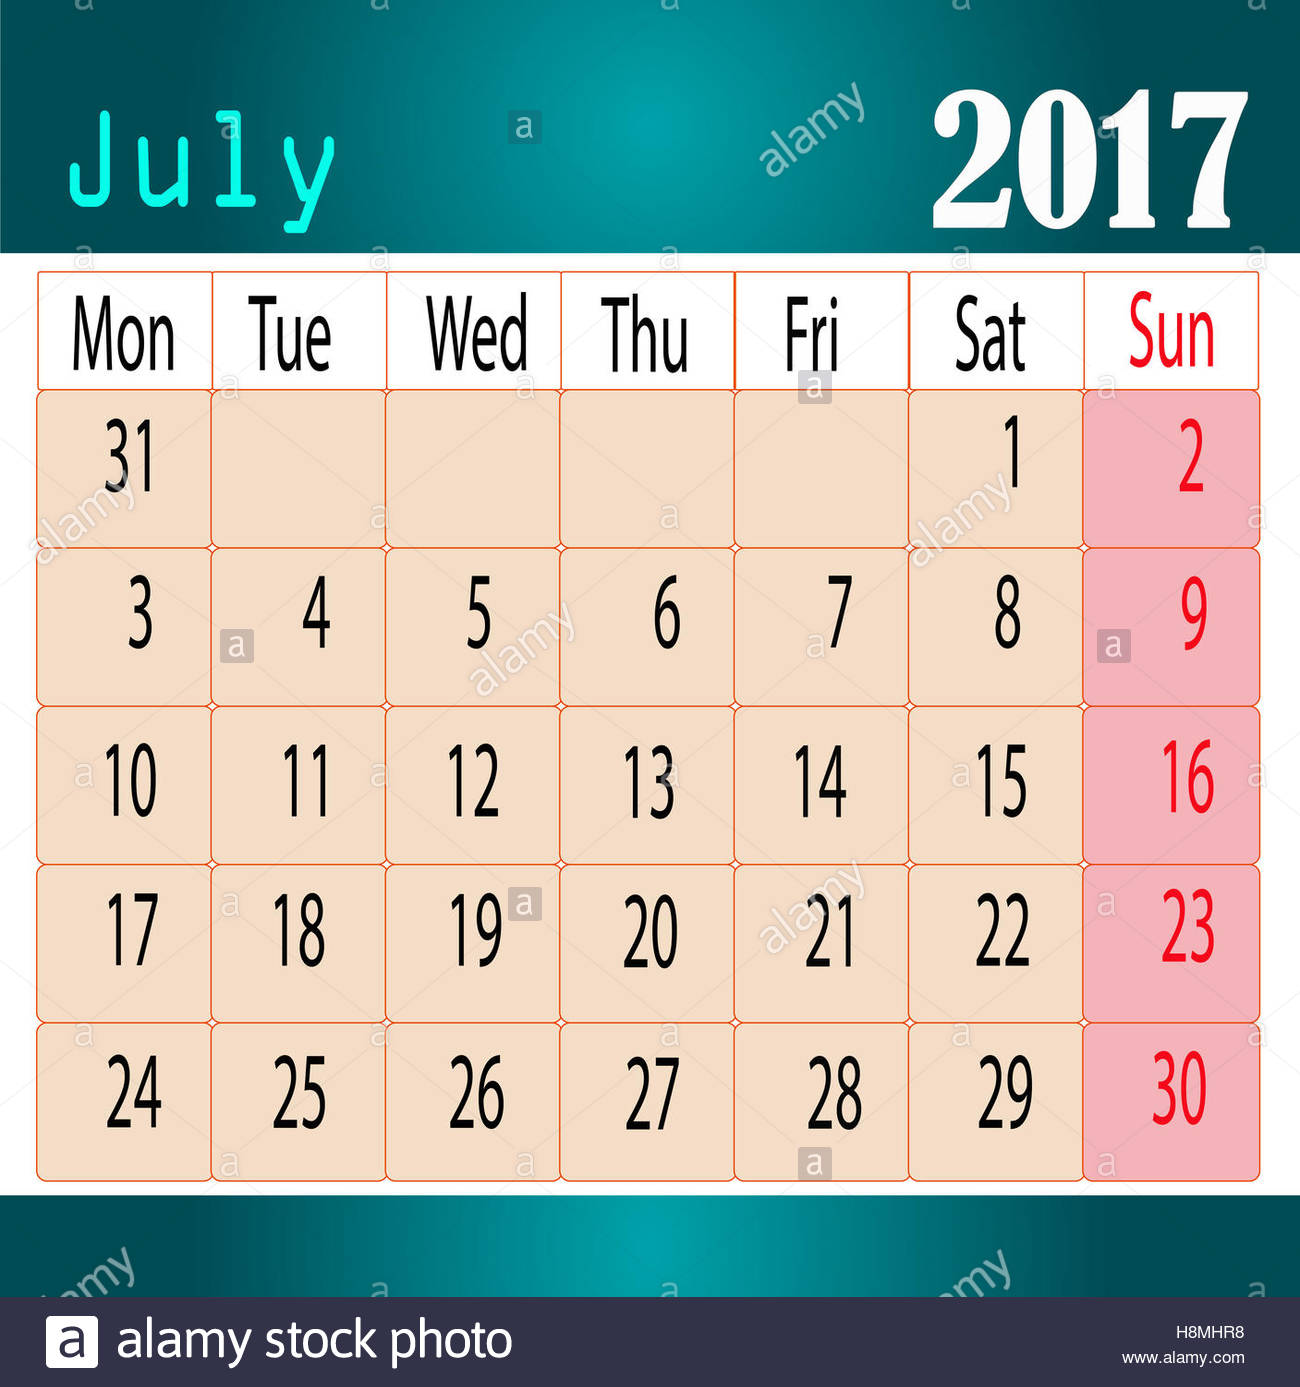 Calendar Design July : Desktop calendar design july stock photo royalty